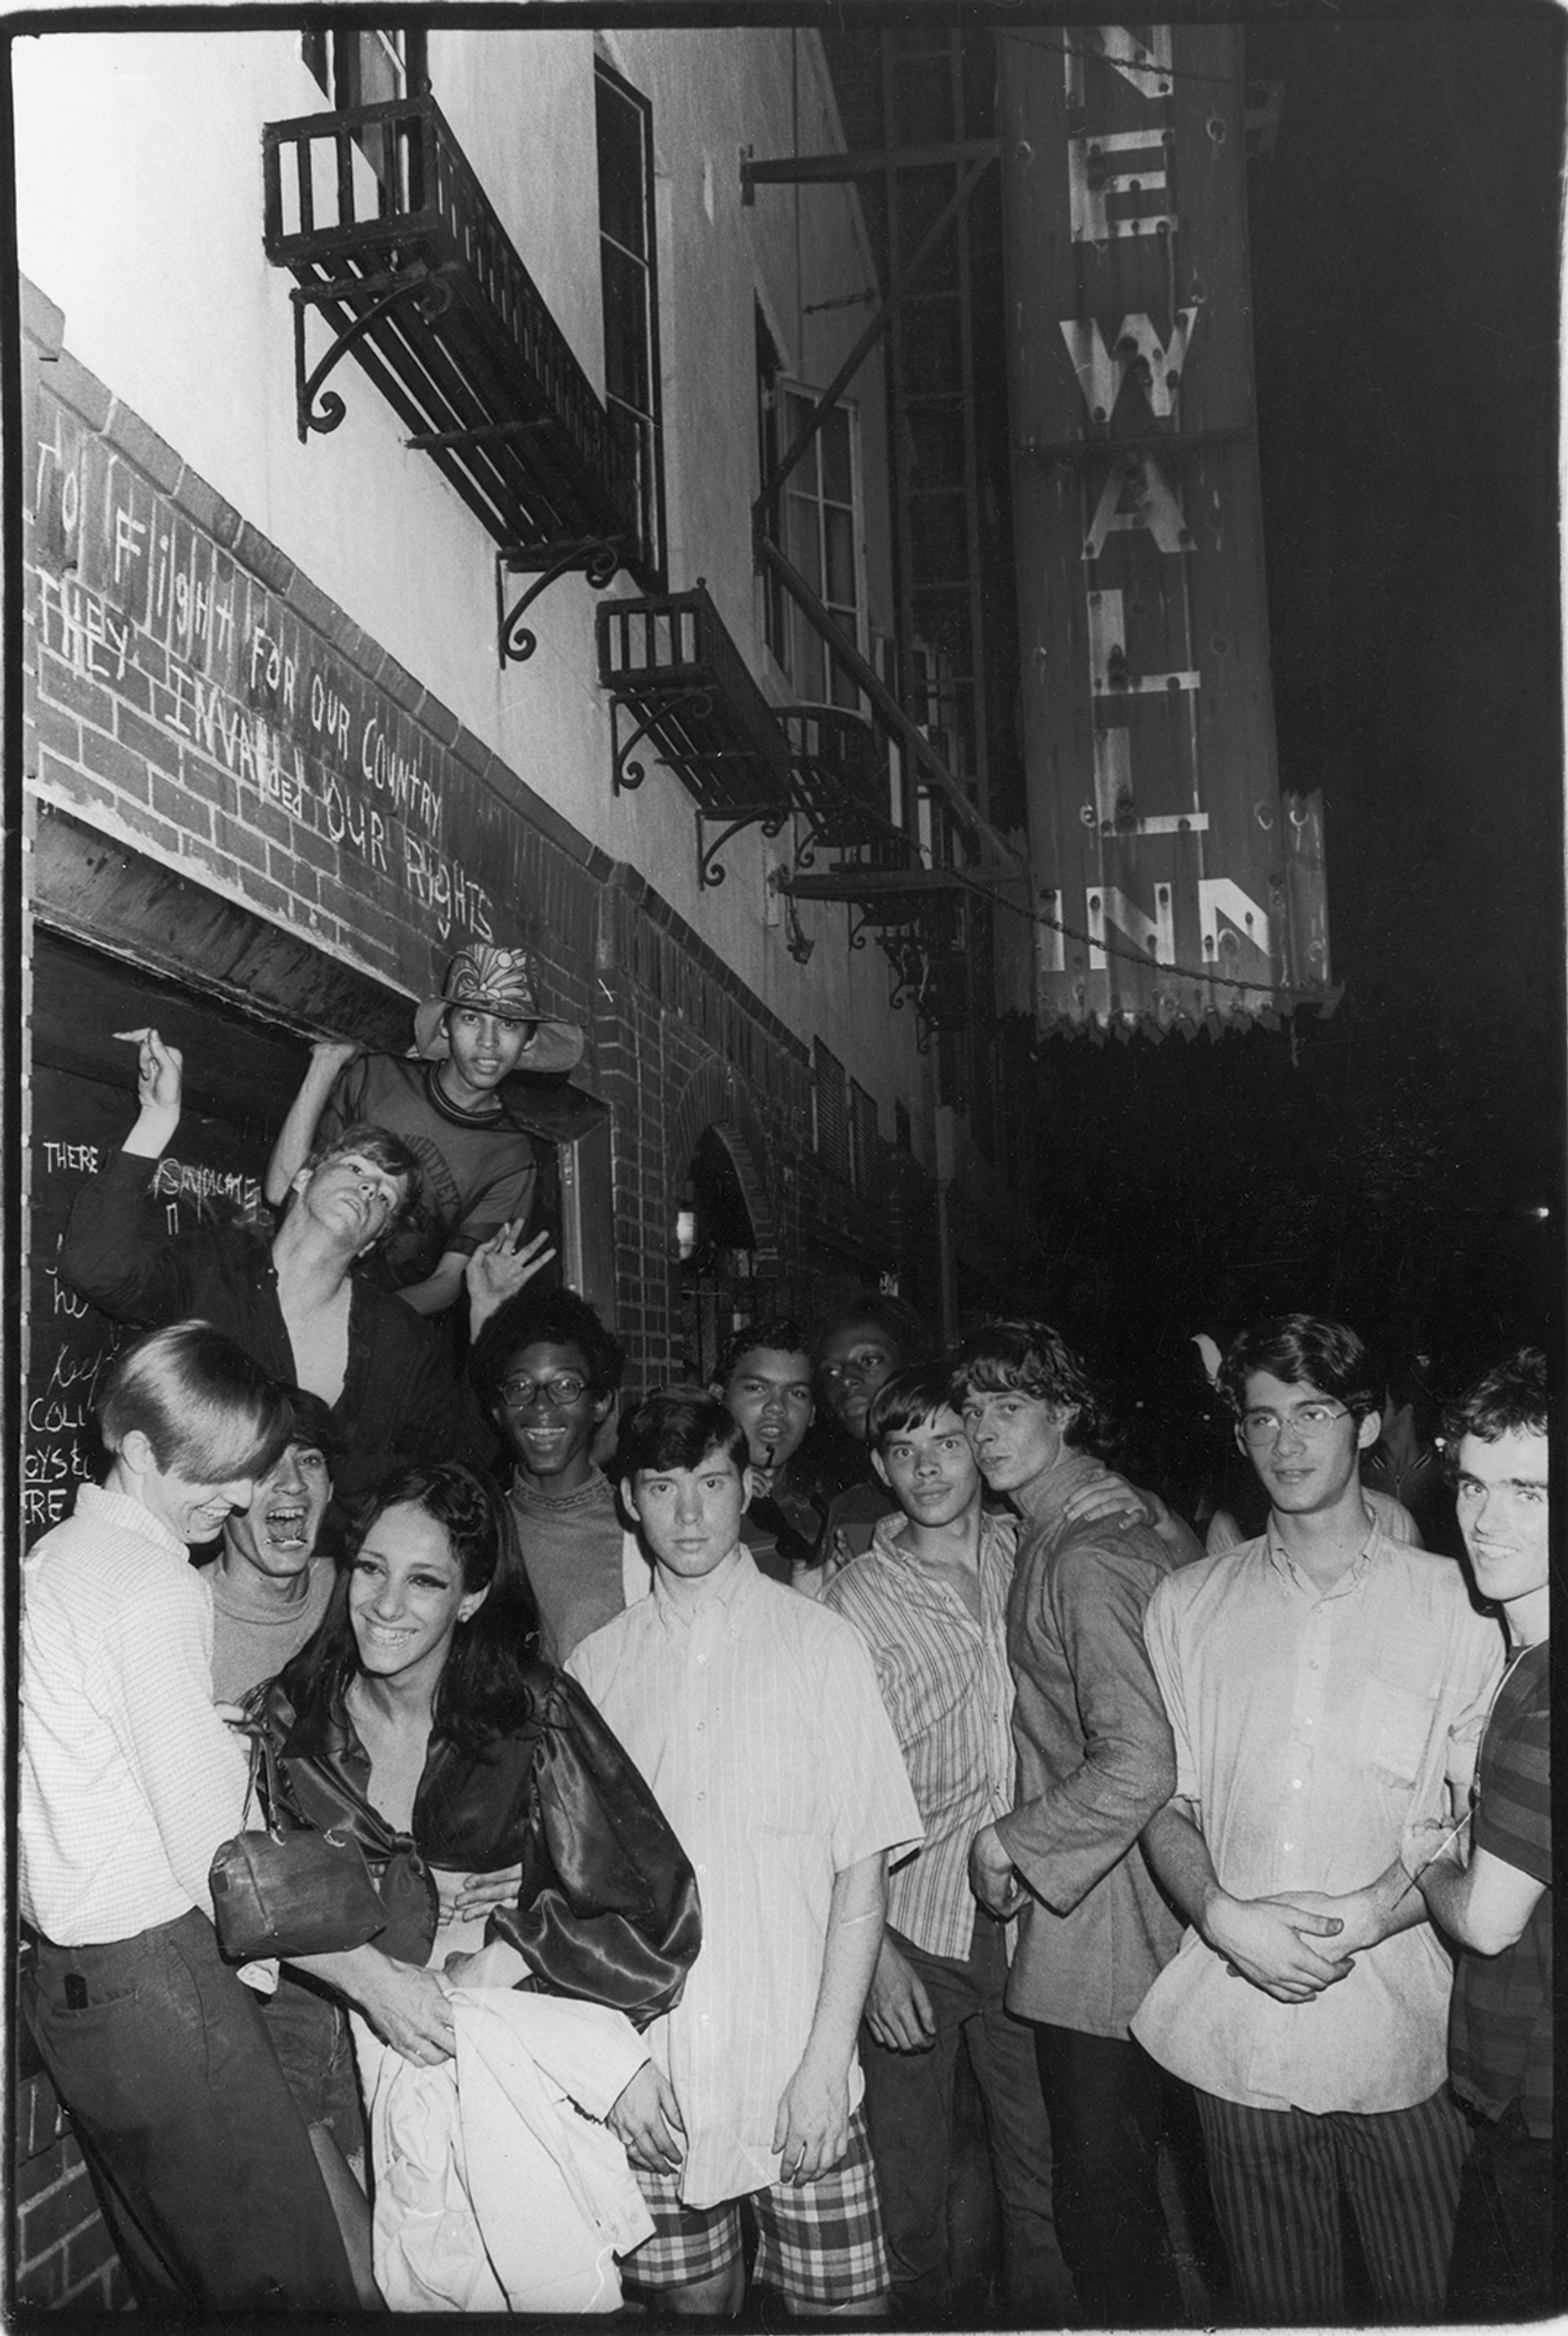 Fred W. McDarrah, Celebration After Riots Outside Stonewall Inn, on view at the Grey Art Gallery Fred McDarrah/Getty Images, courtesy of Pavel Zoubok Gallery